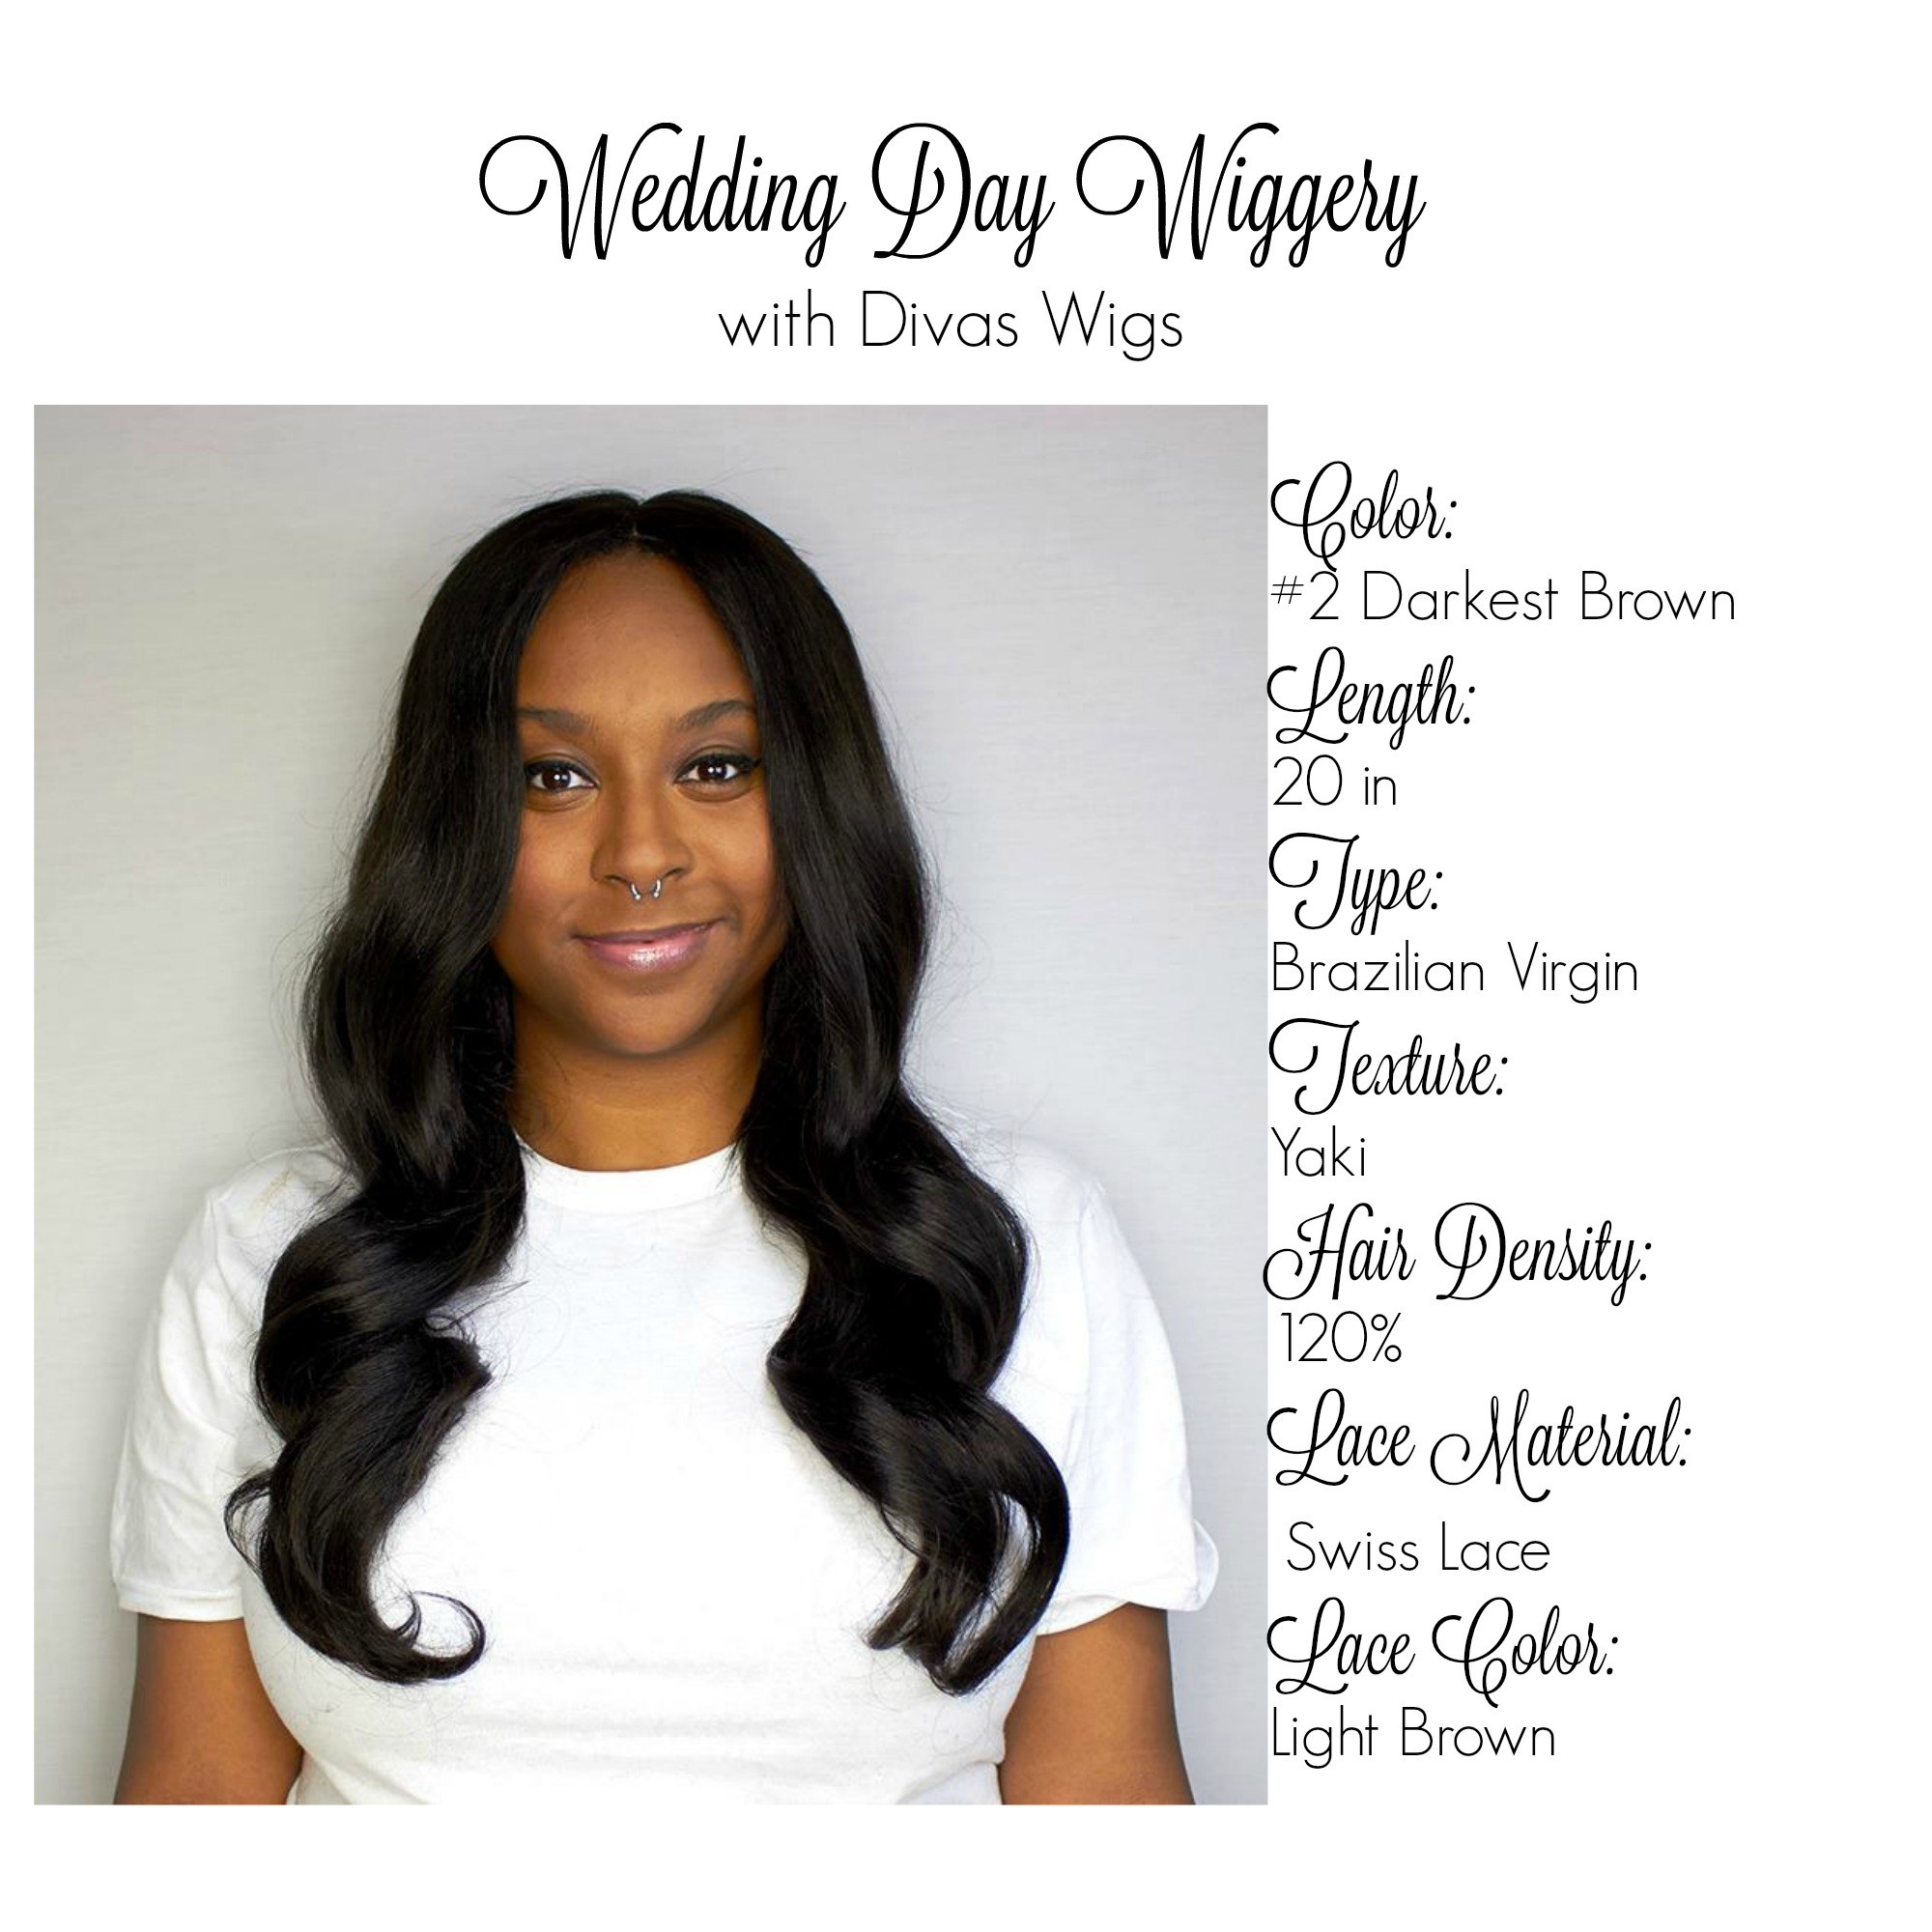 Wedding Day Wiggery with Divas Wigs - World Bride Magazine